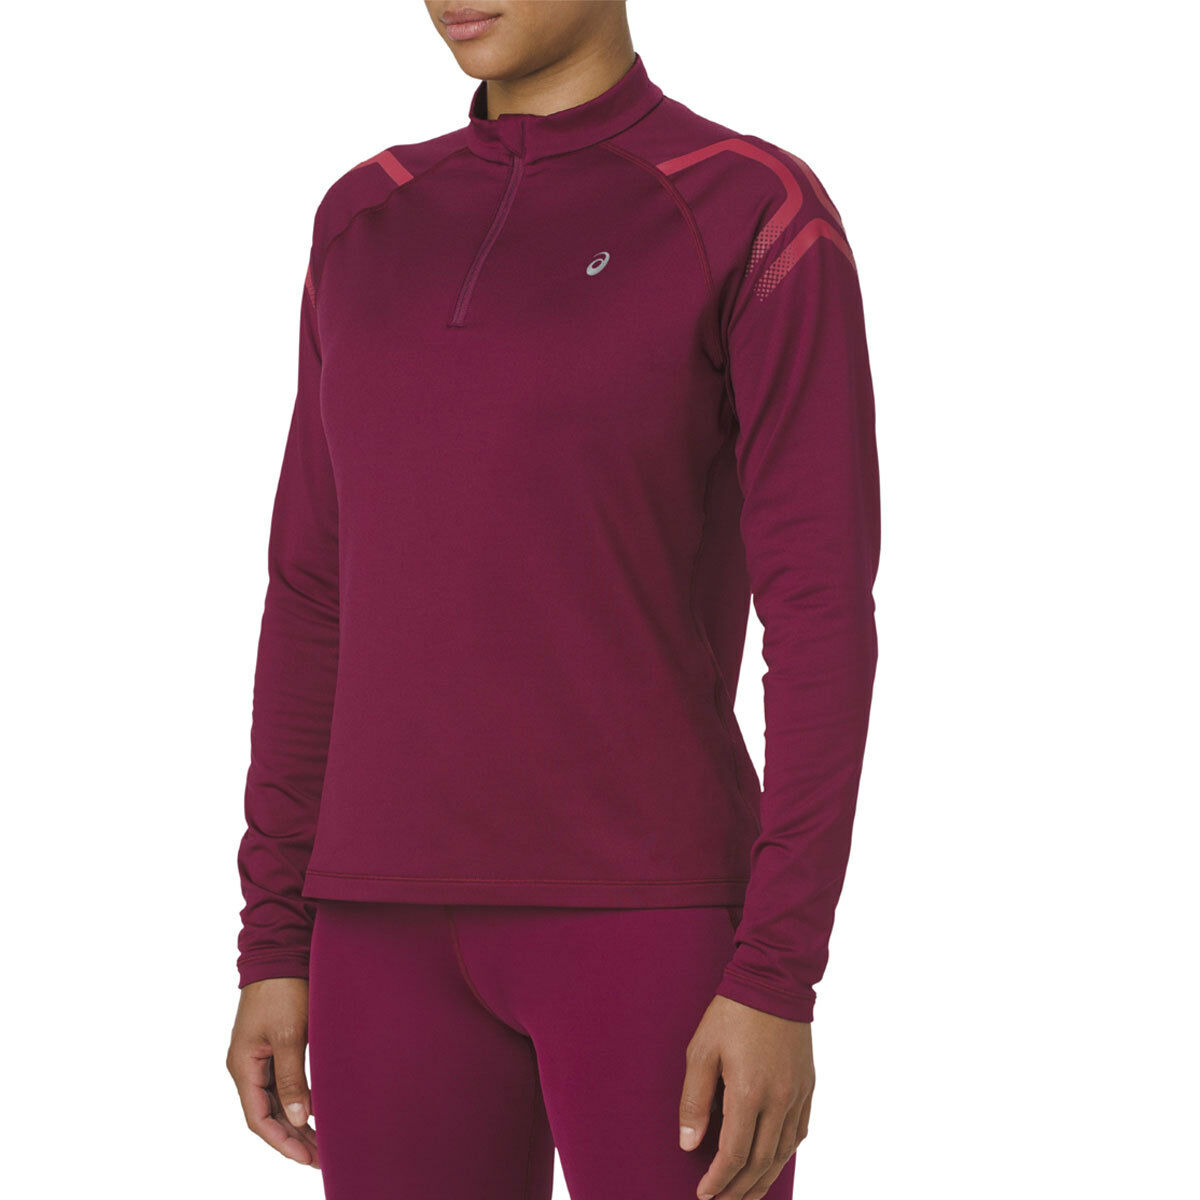 Asics ICON Winter Longsleeve 1 2 ZIP Lady   2012A012-600 (Cordovan Samba)